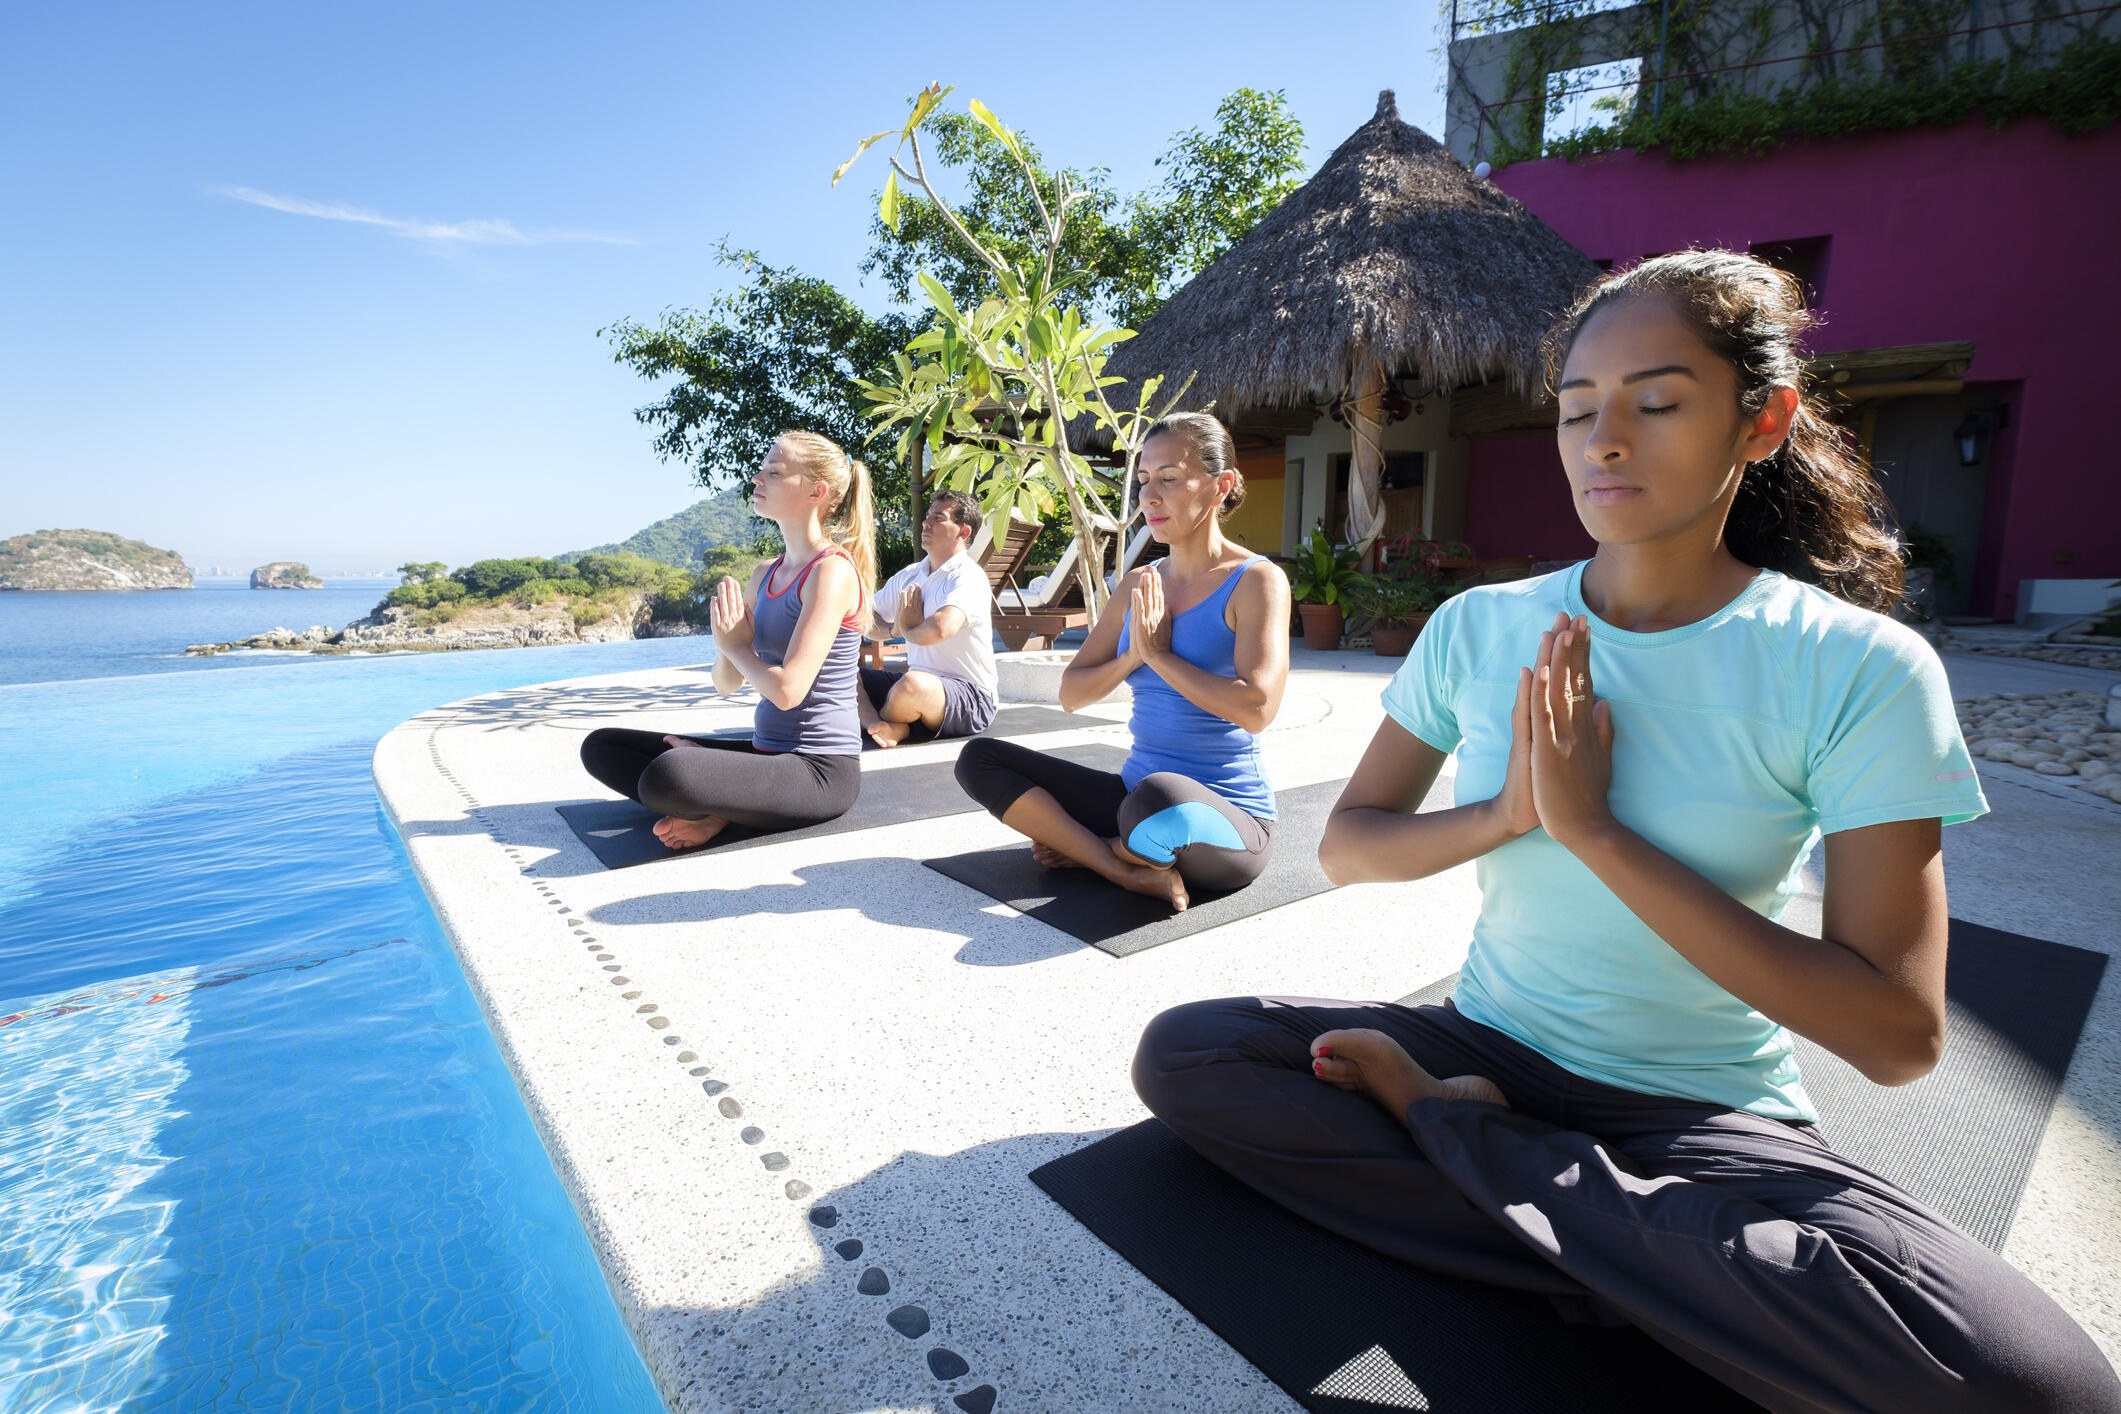 Group of people sitting on yoga mats on the edge of a pool in a tropical setting